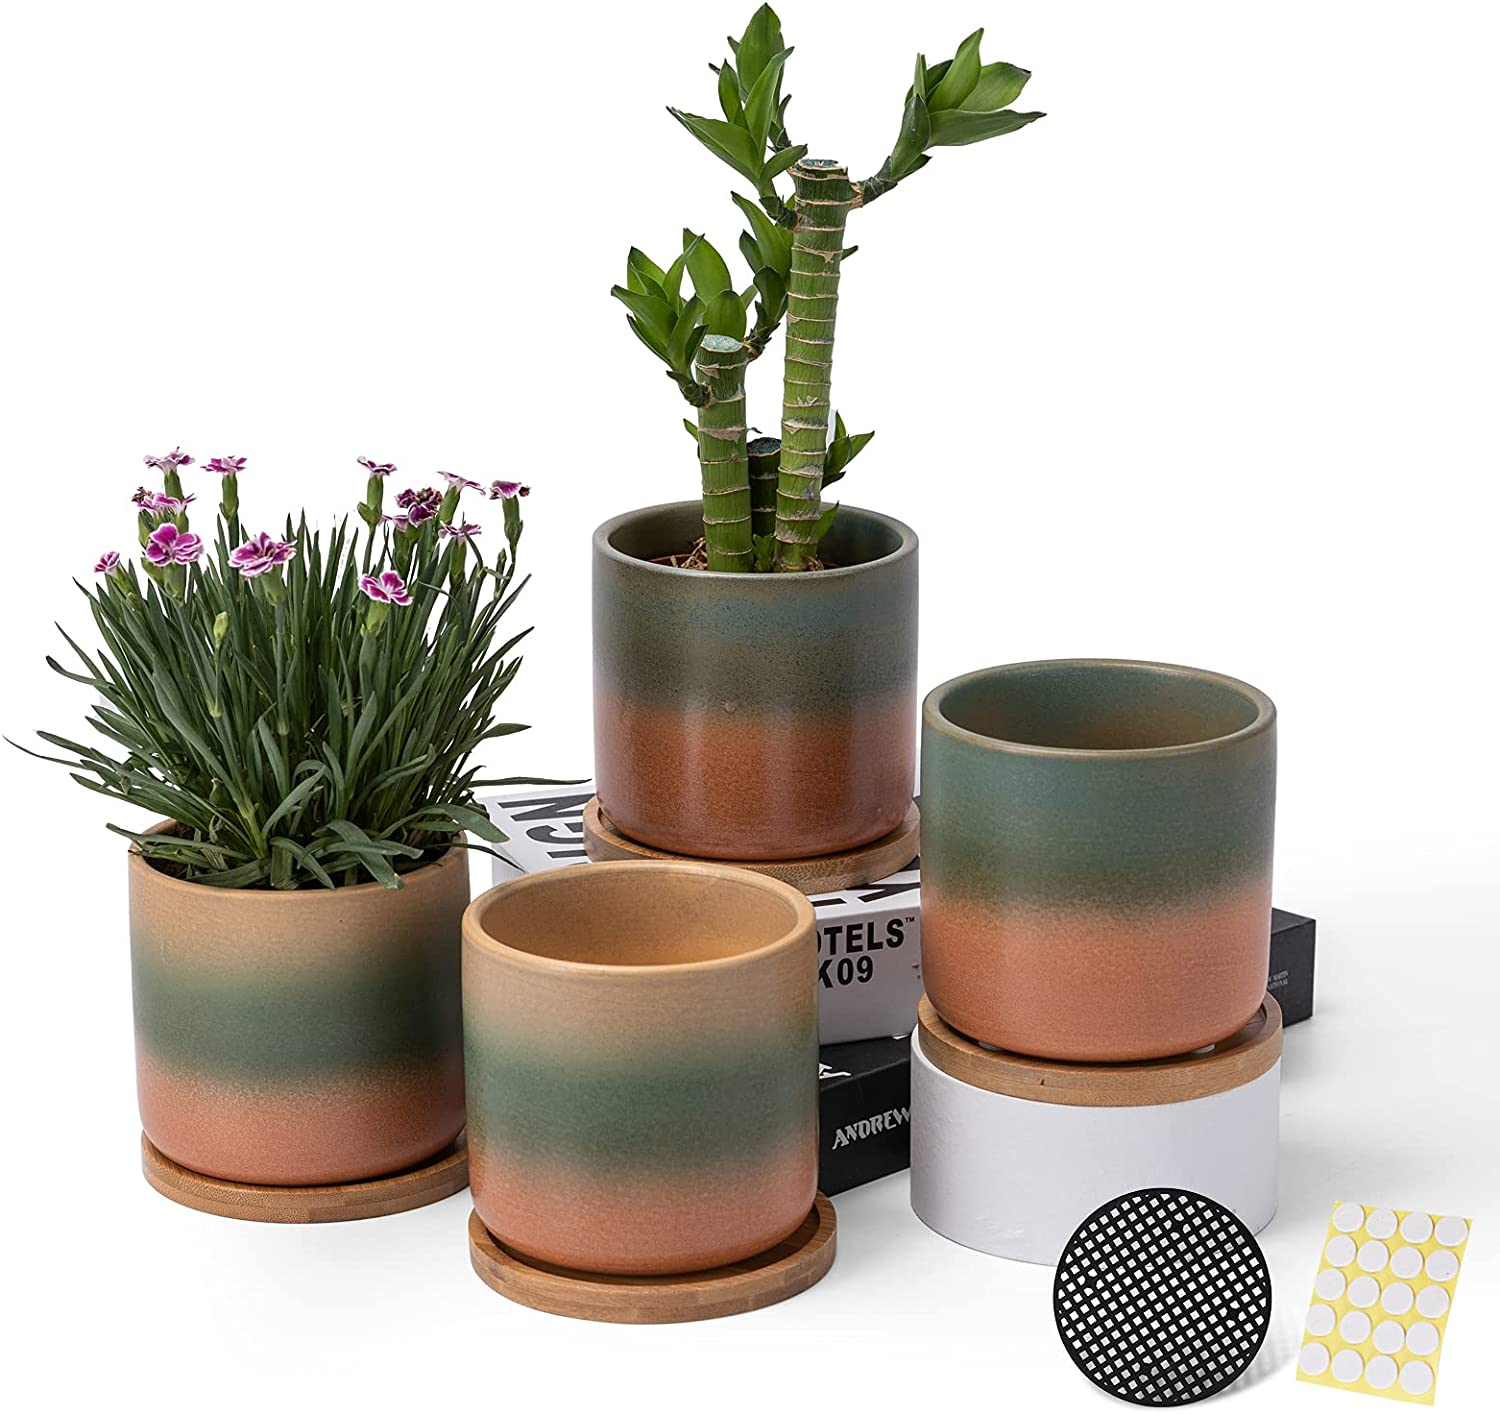 Max 89% OFF 4 Inch Ceramic Plant Pots with Adora and Drainage Holes Long Beach Mall Saucers